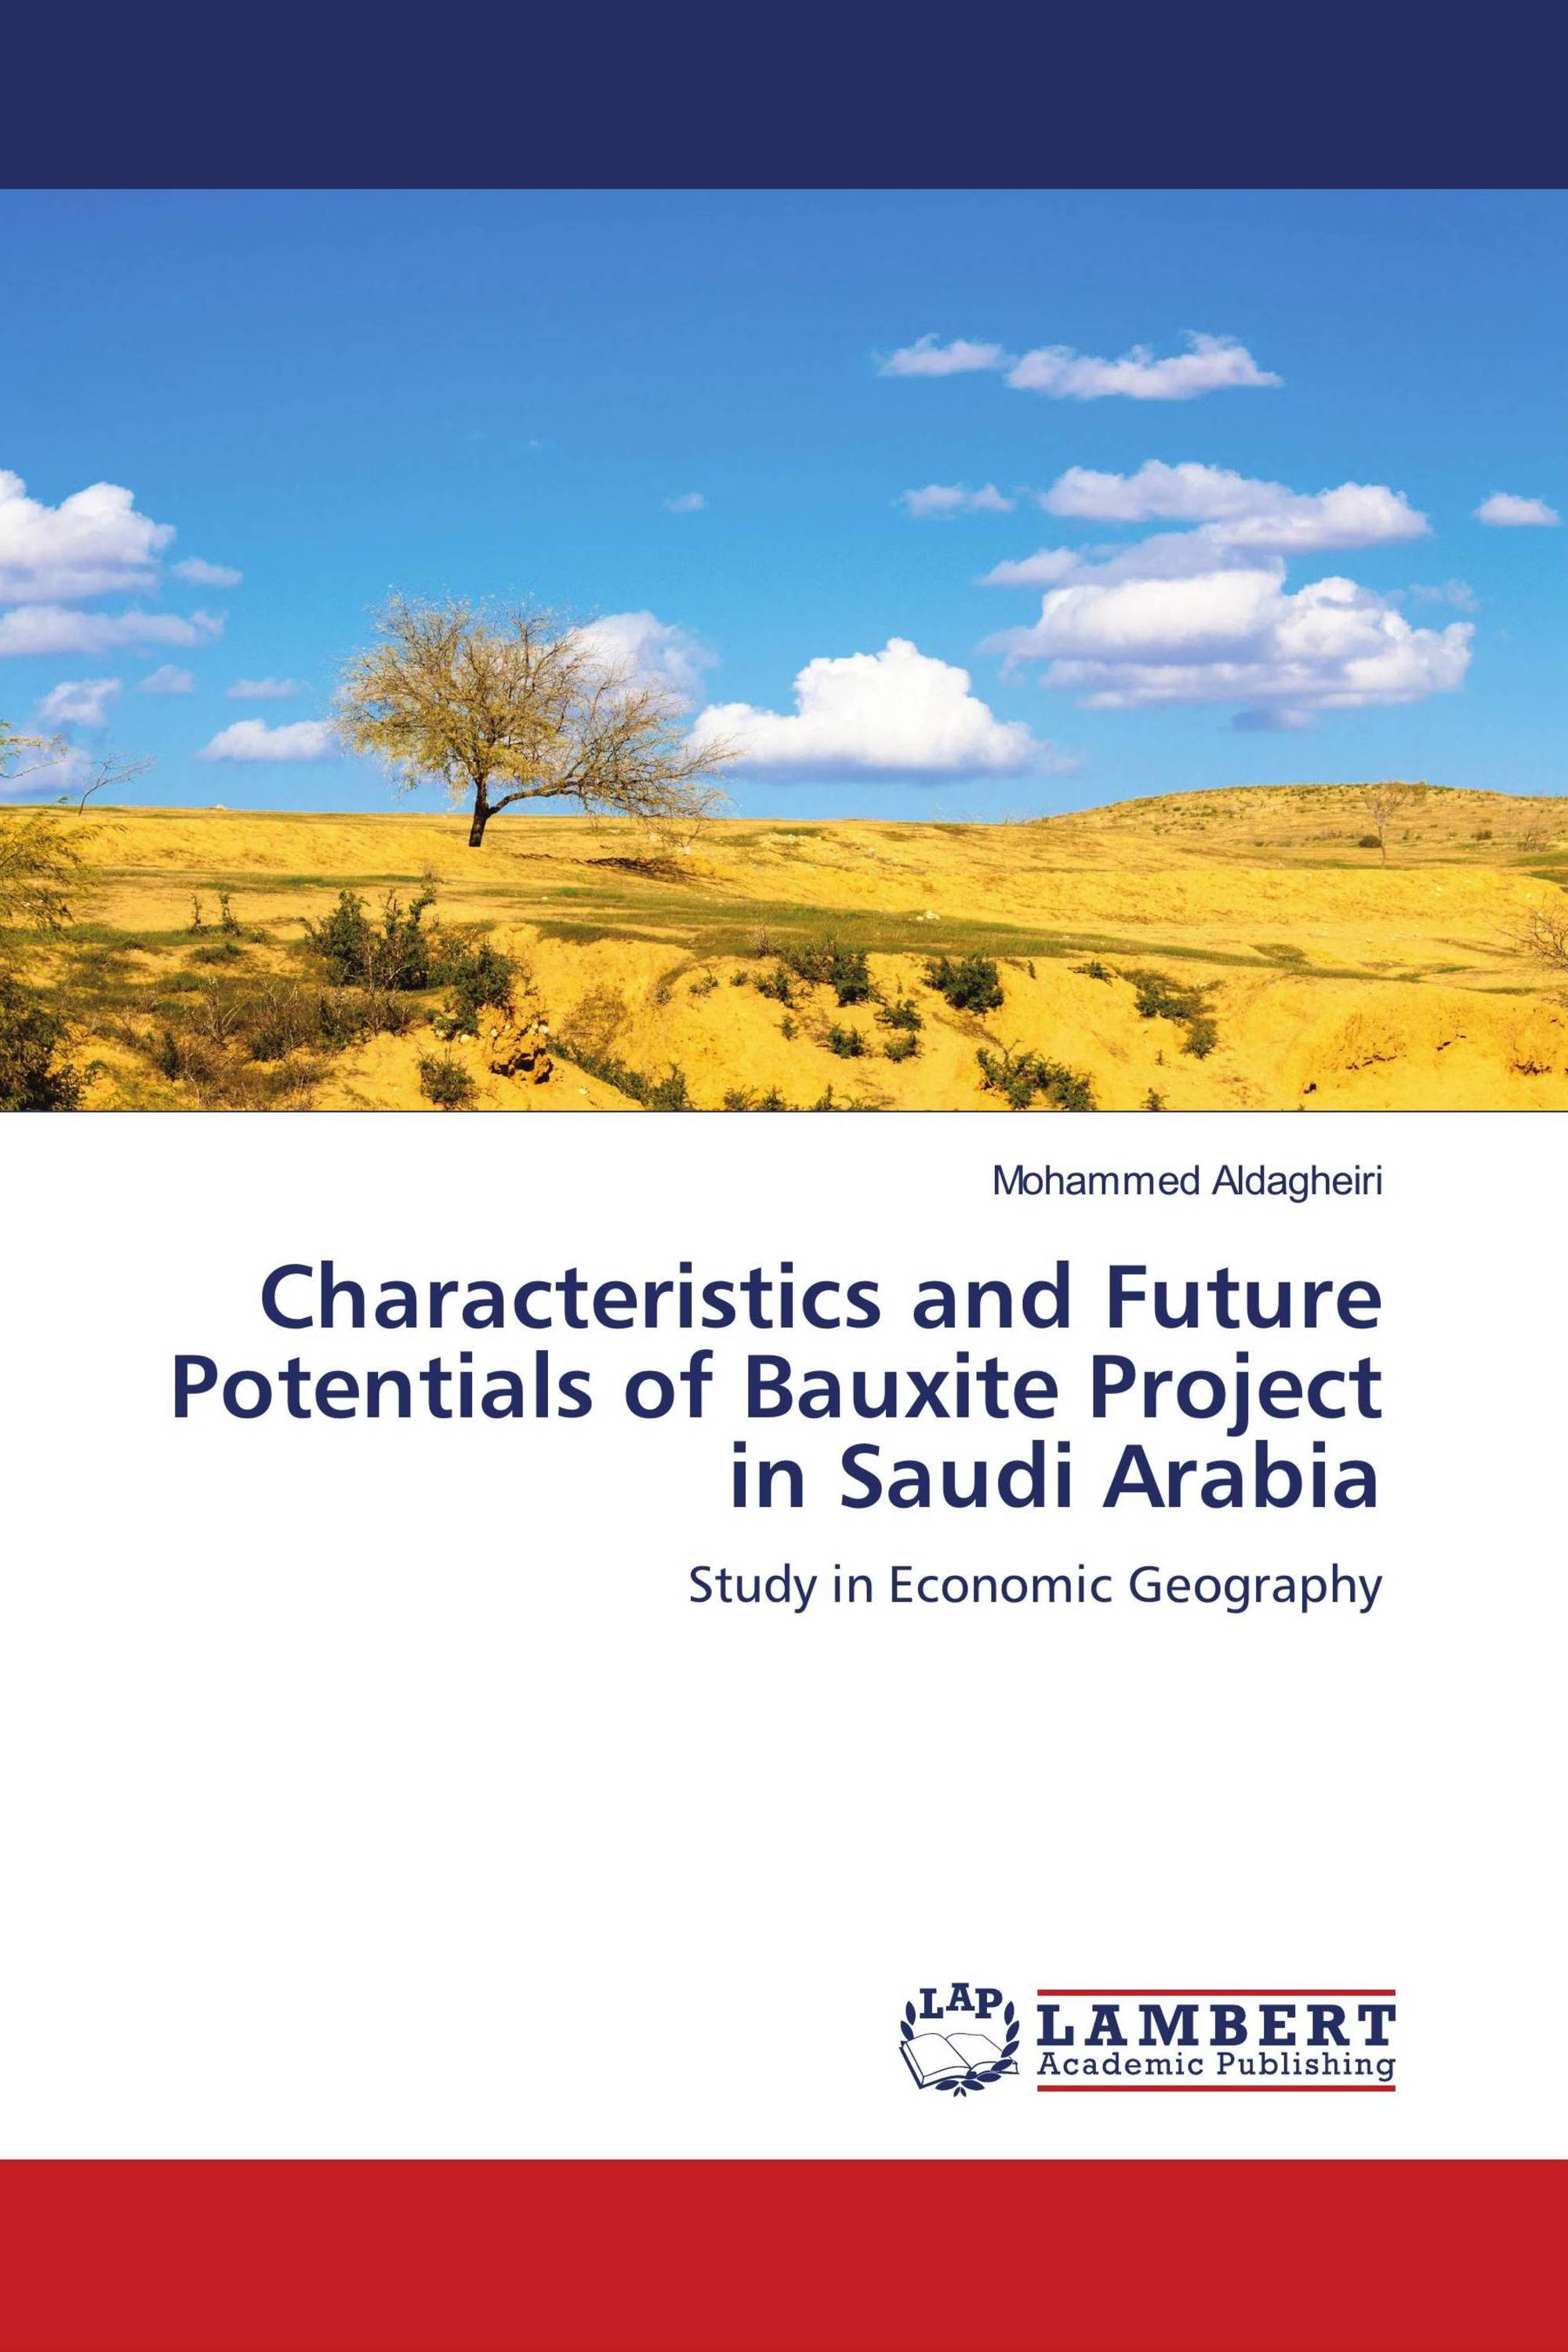 Characteristics and Future Potentials of Bauxite Project in Saudi Arabia